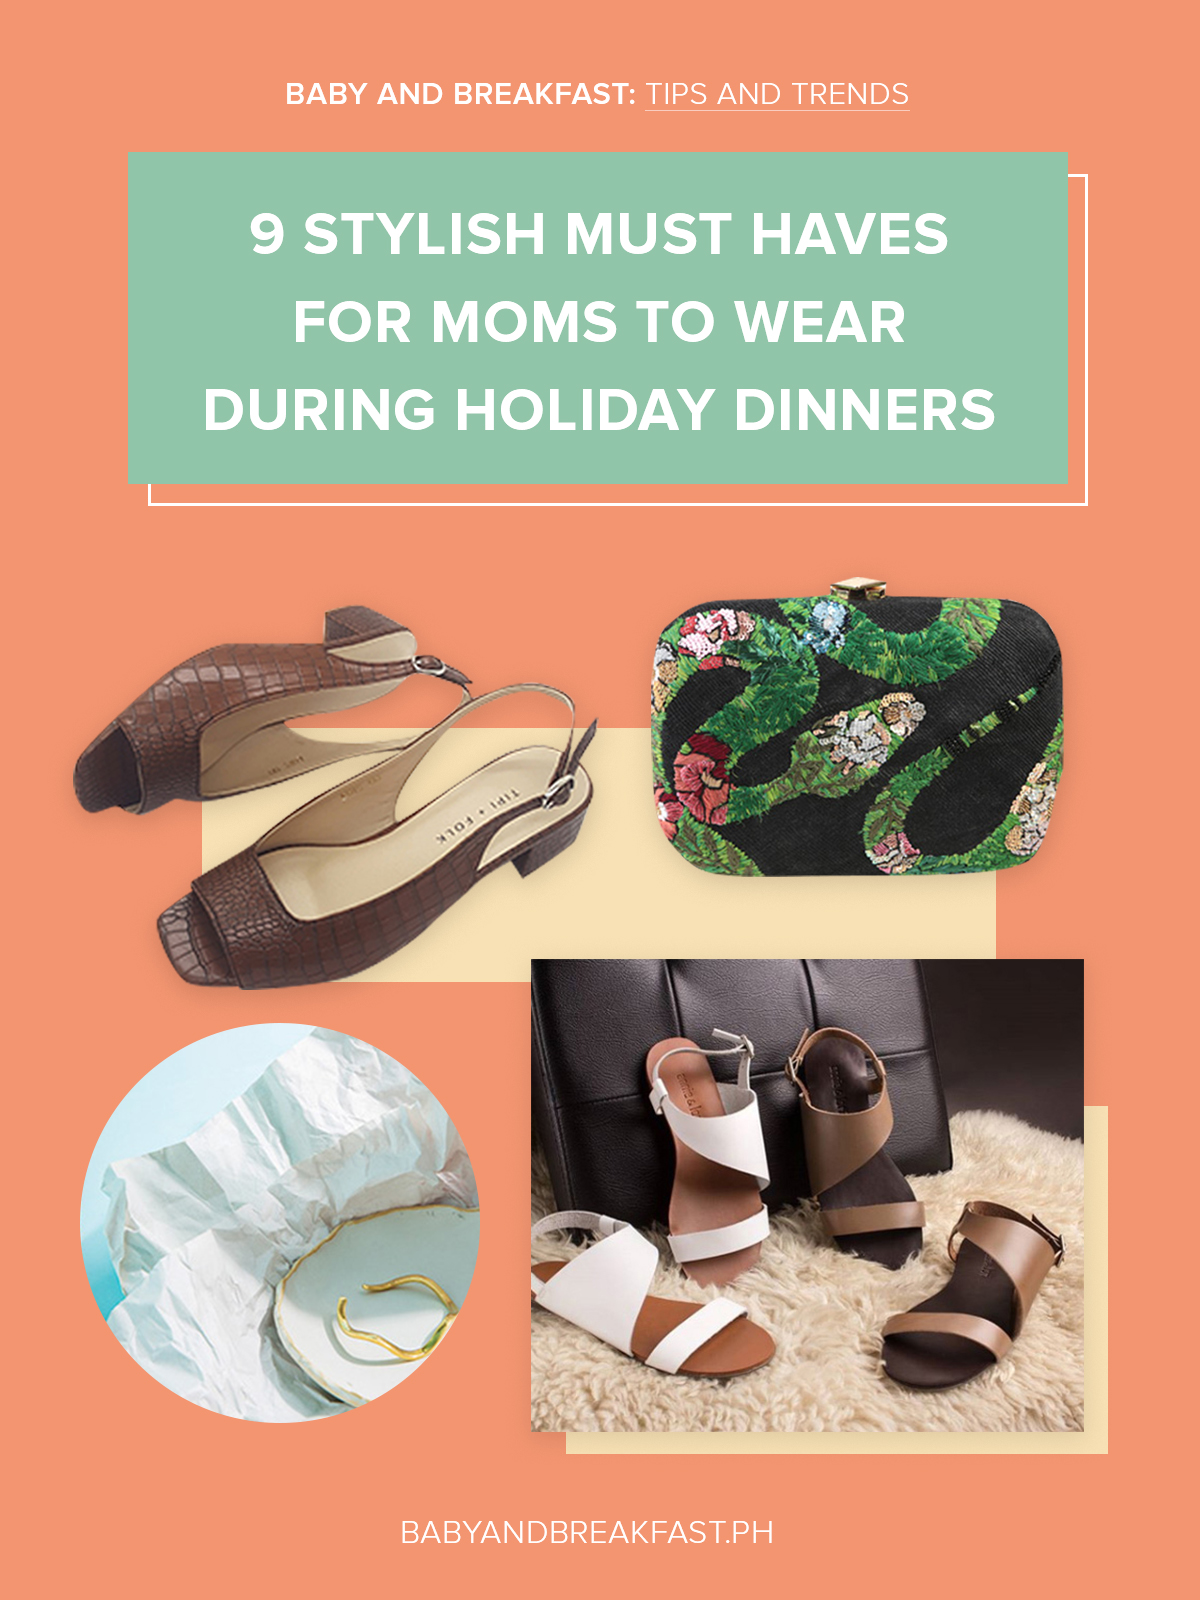 Baby and Breakfast: Tips and Trends 9 Stylish Must Have for Moms to Wear During Holiday Dinners